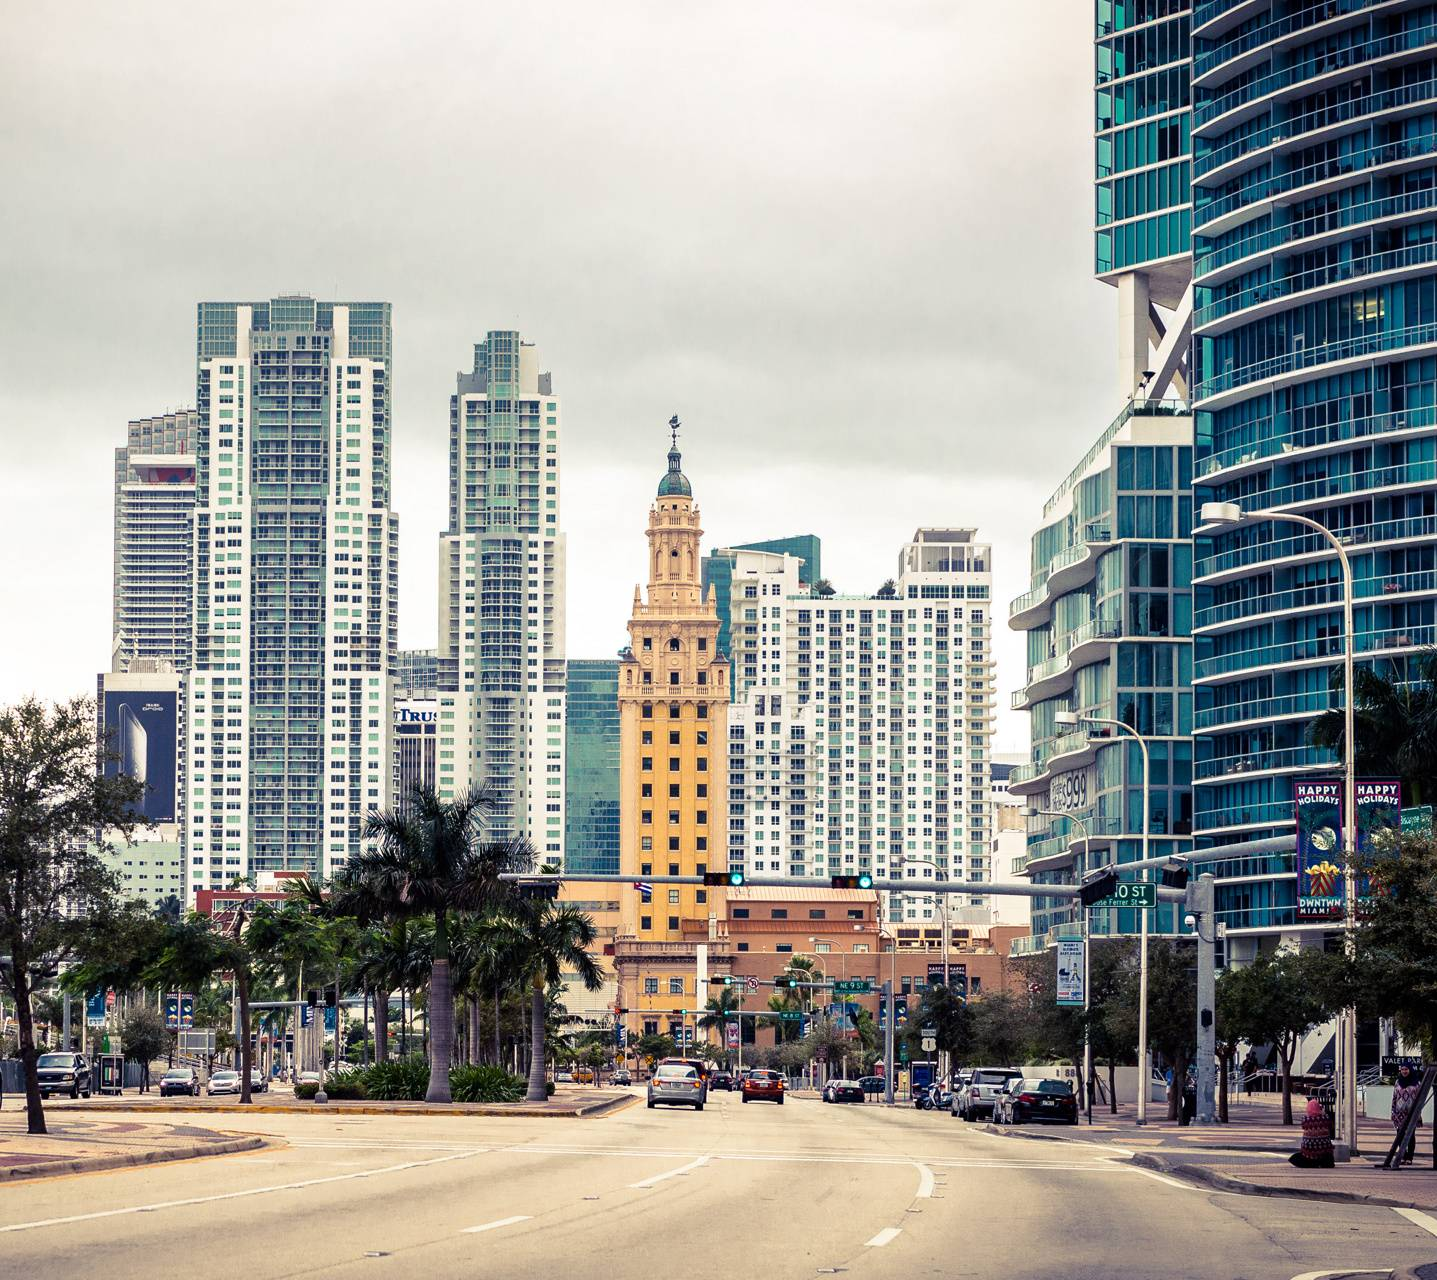 Miami Downtown wallpaper by Sundukovs